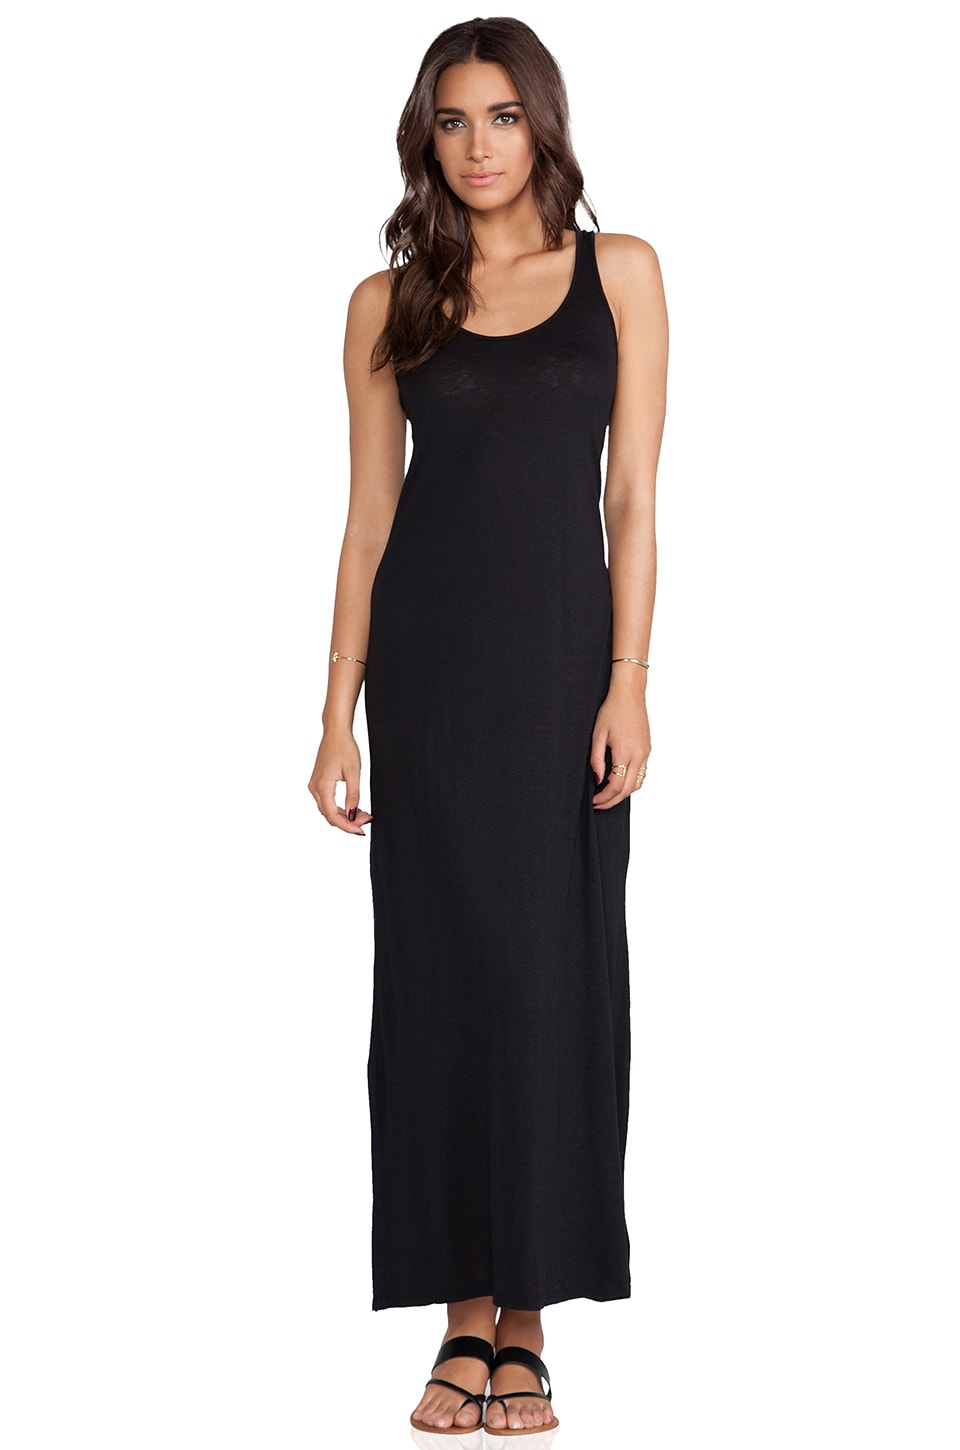 Velvet by Graham & Spencer Gypsy Luxe Slub Maxi Dress in Black